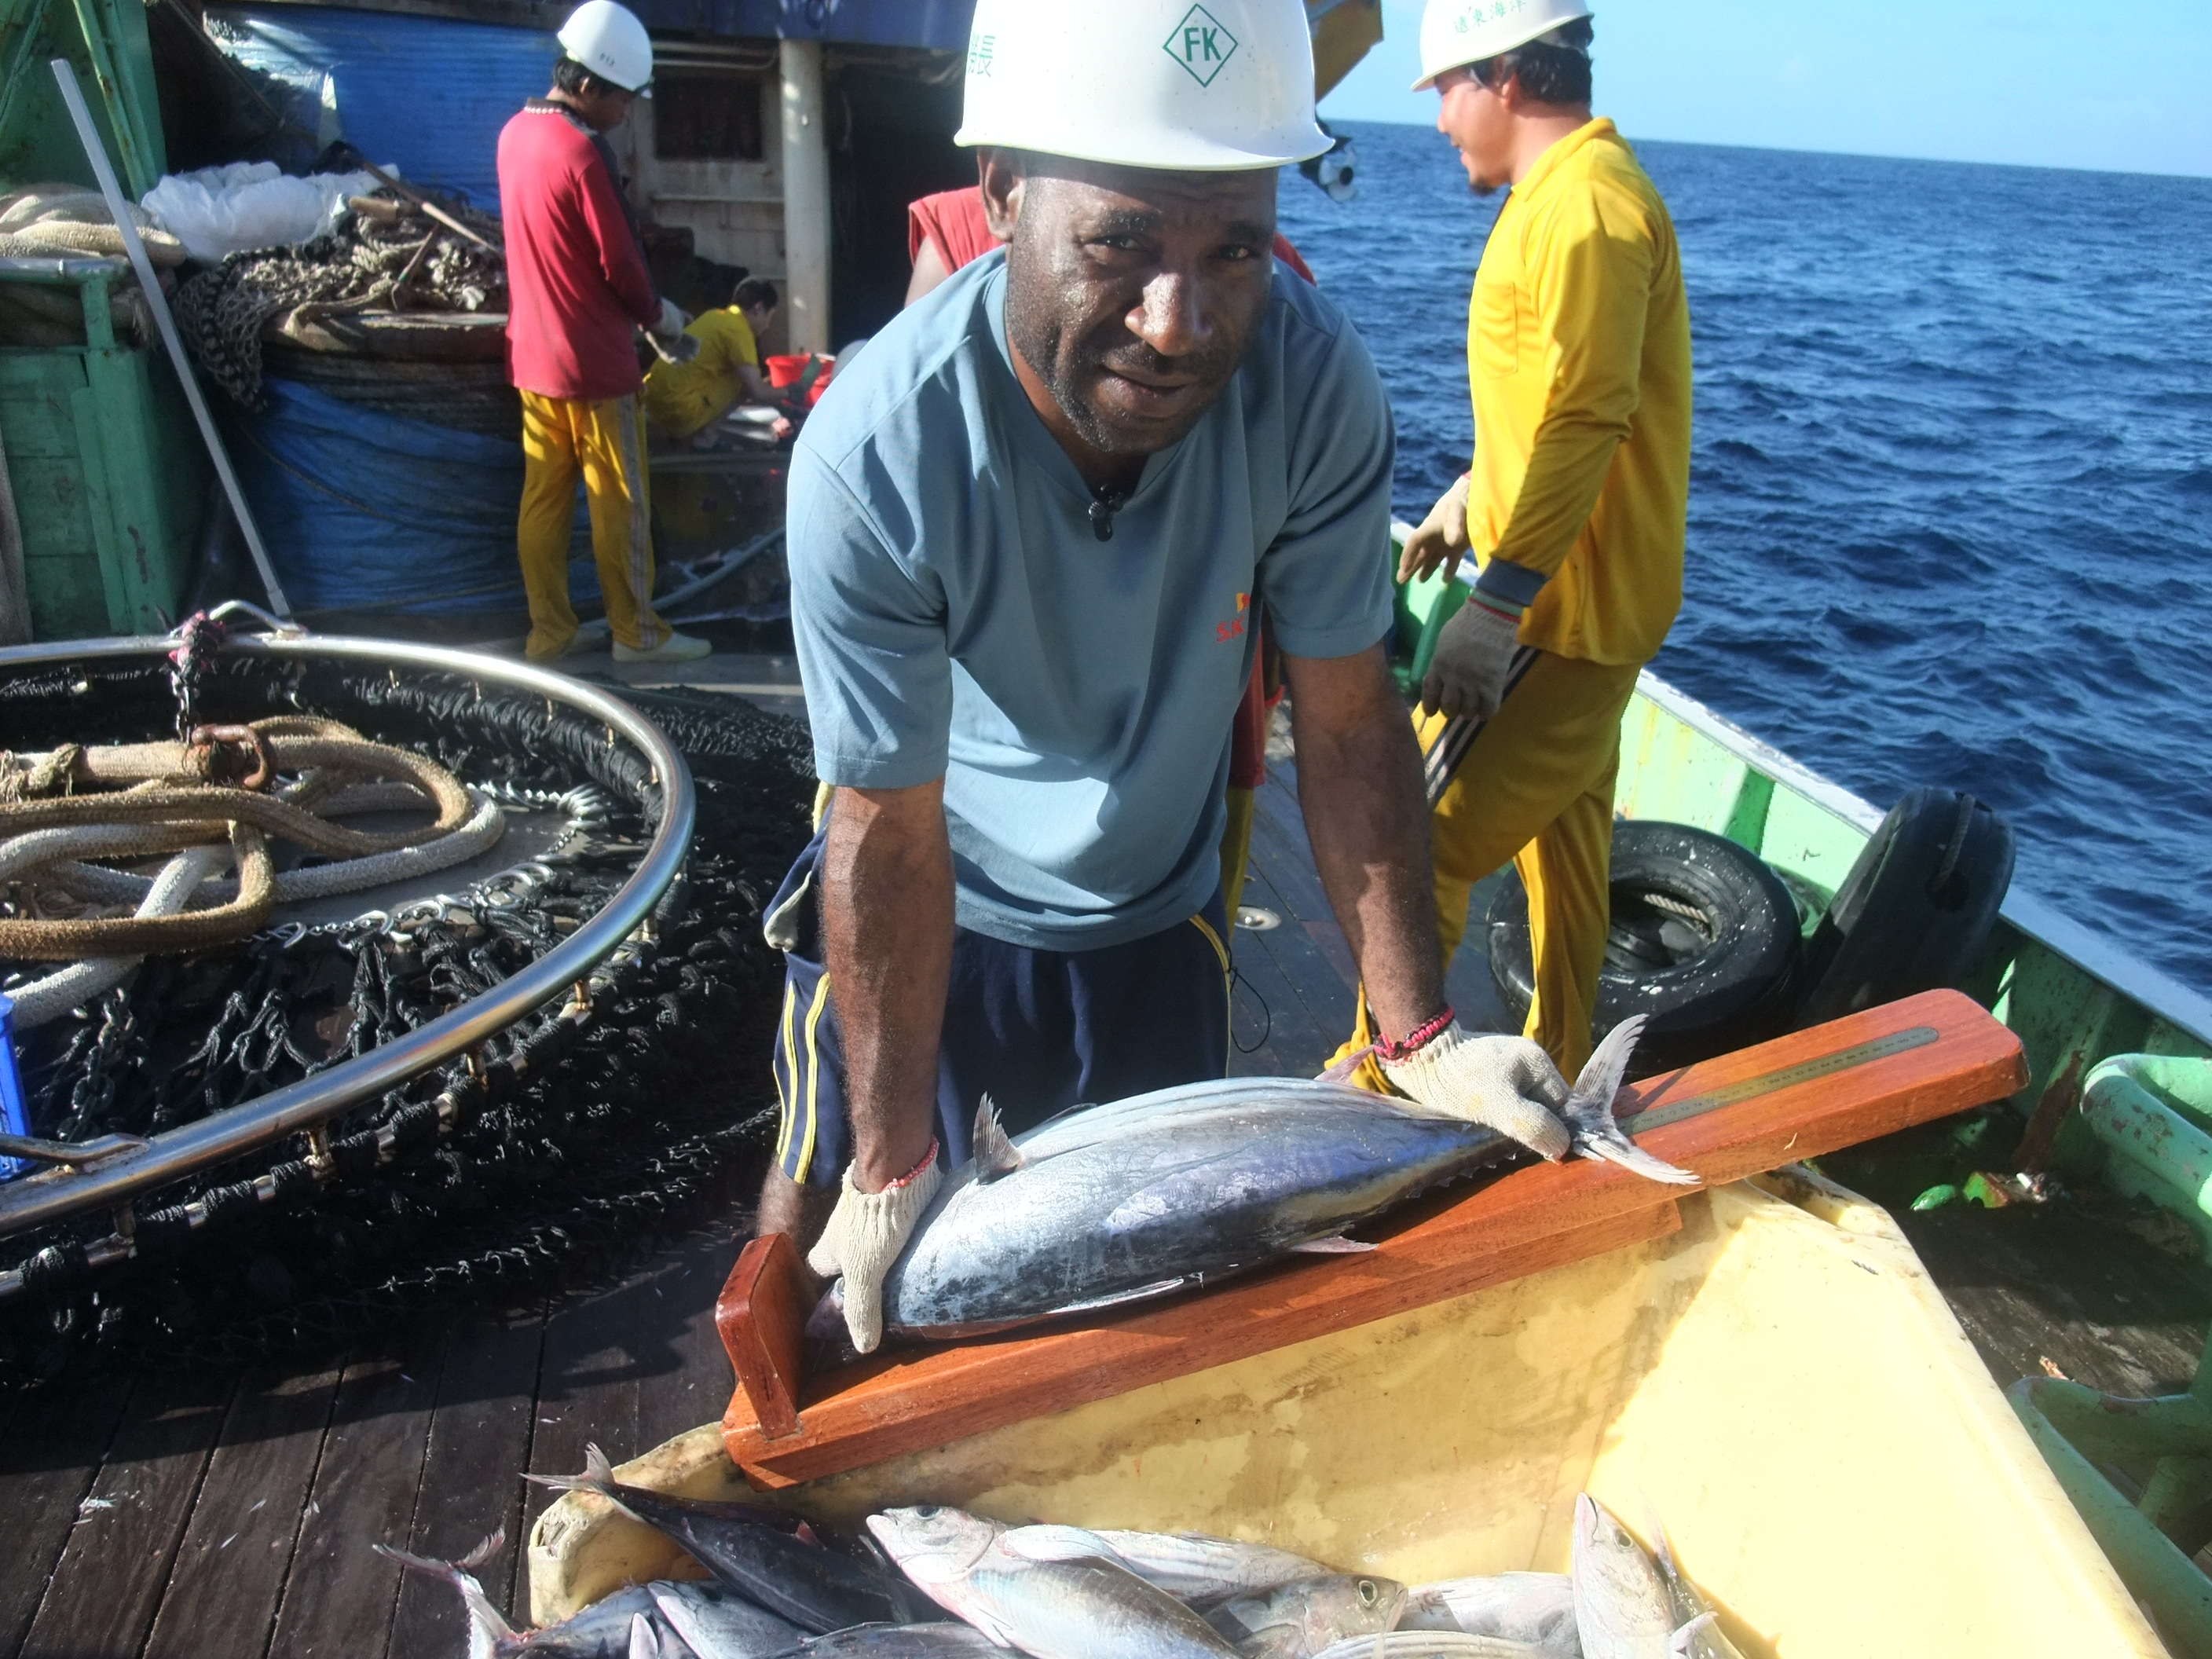 Micronesia and Marshall Islands lead the way in fisheries sustainability